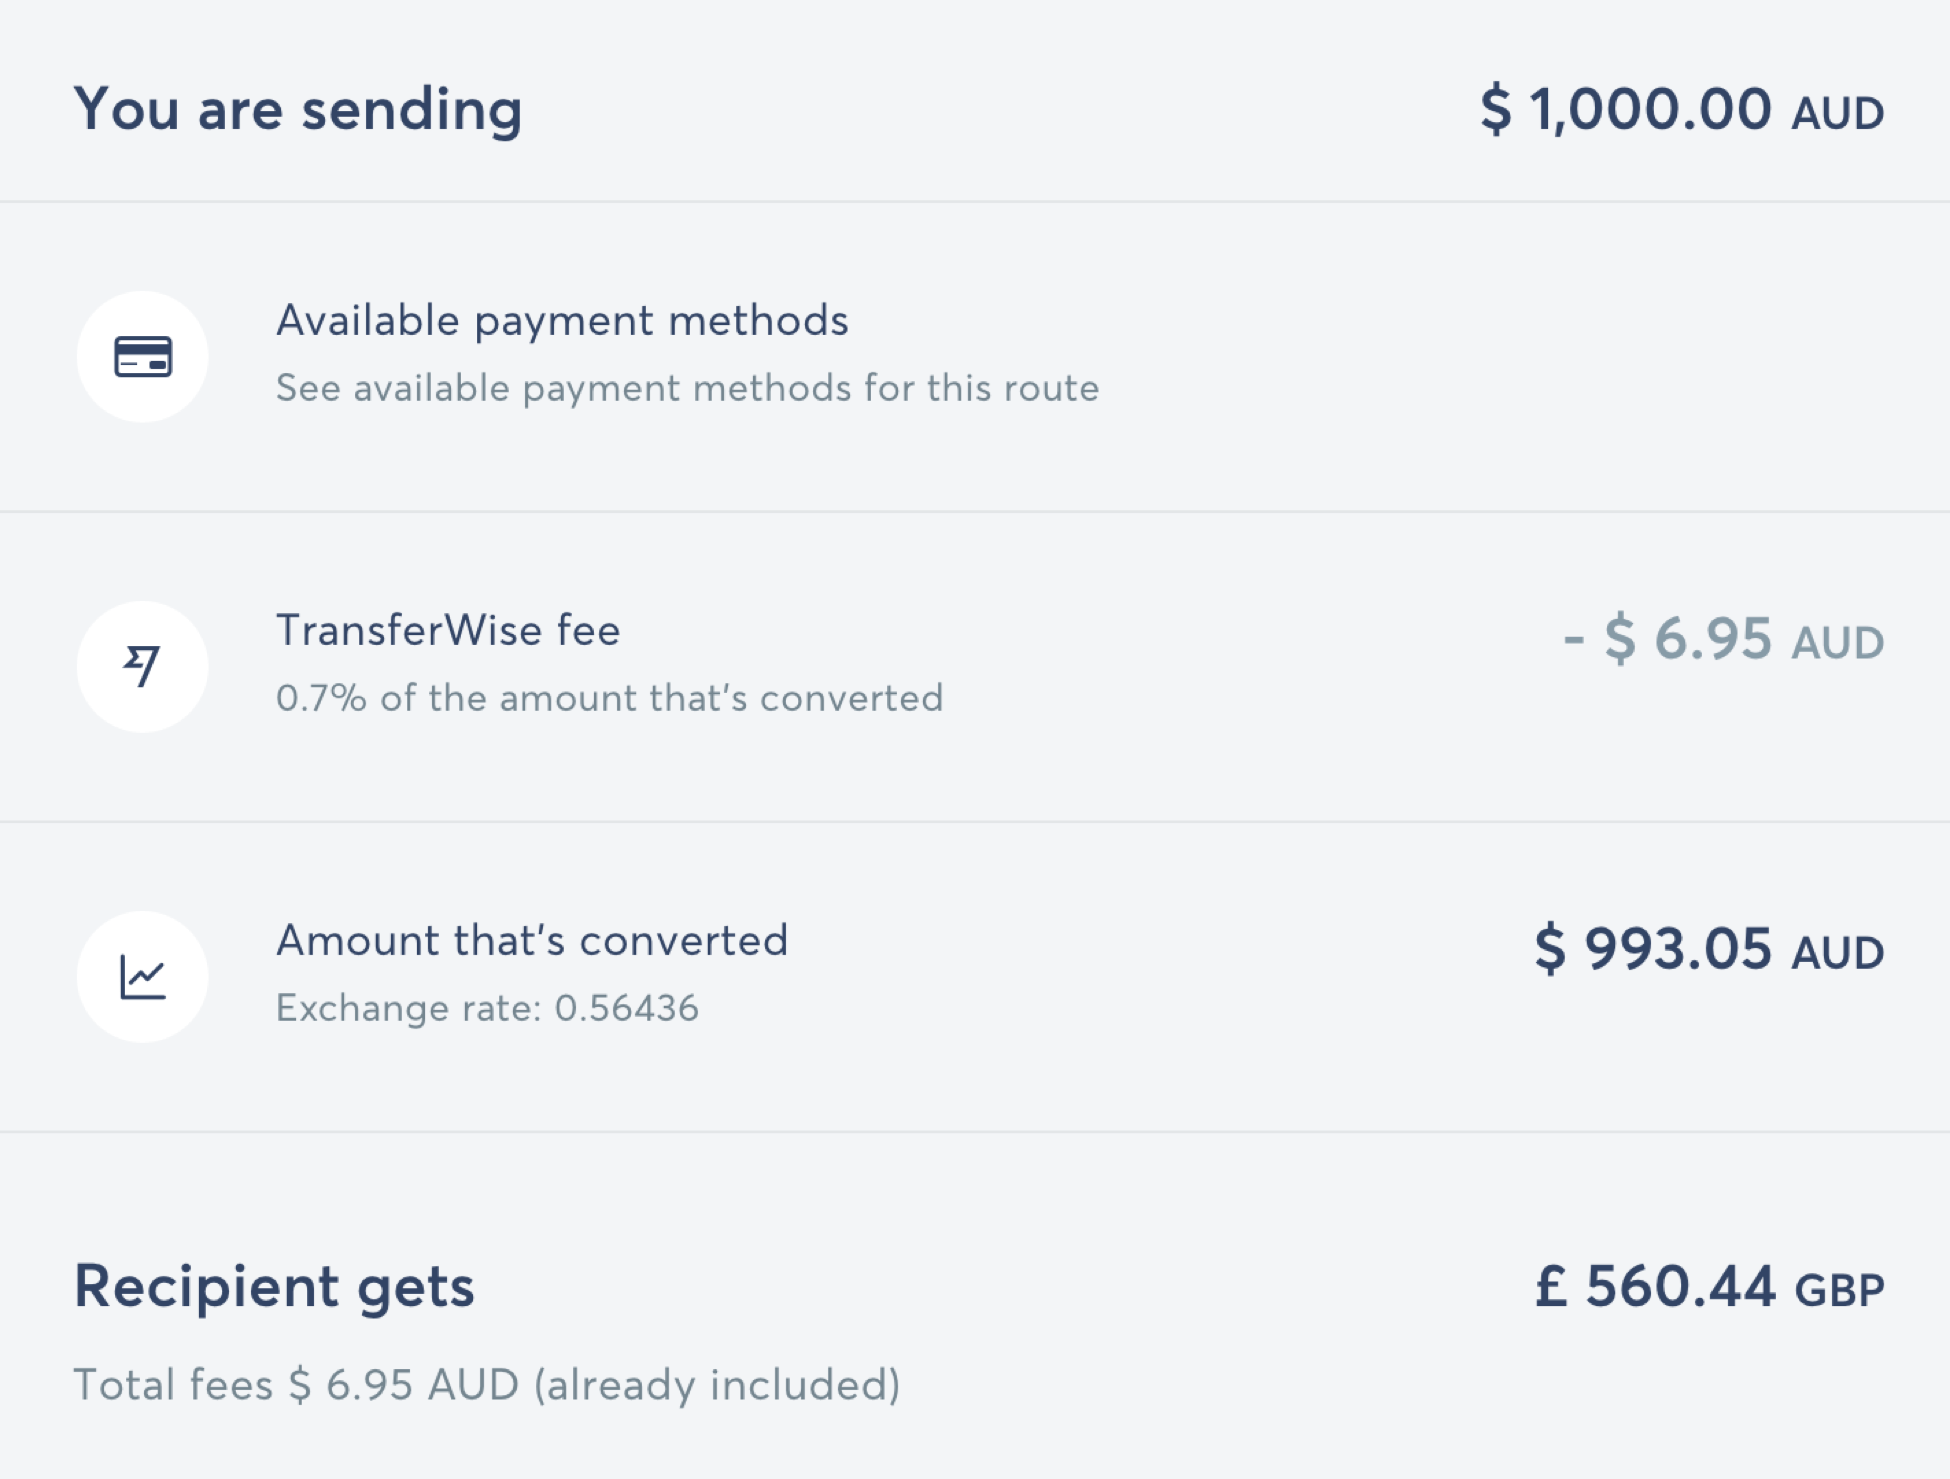 sending money via transferwise AUD to GBP